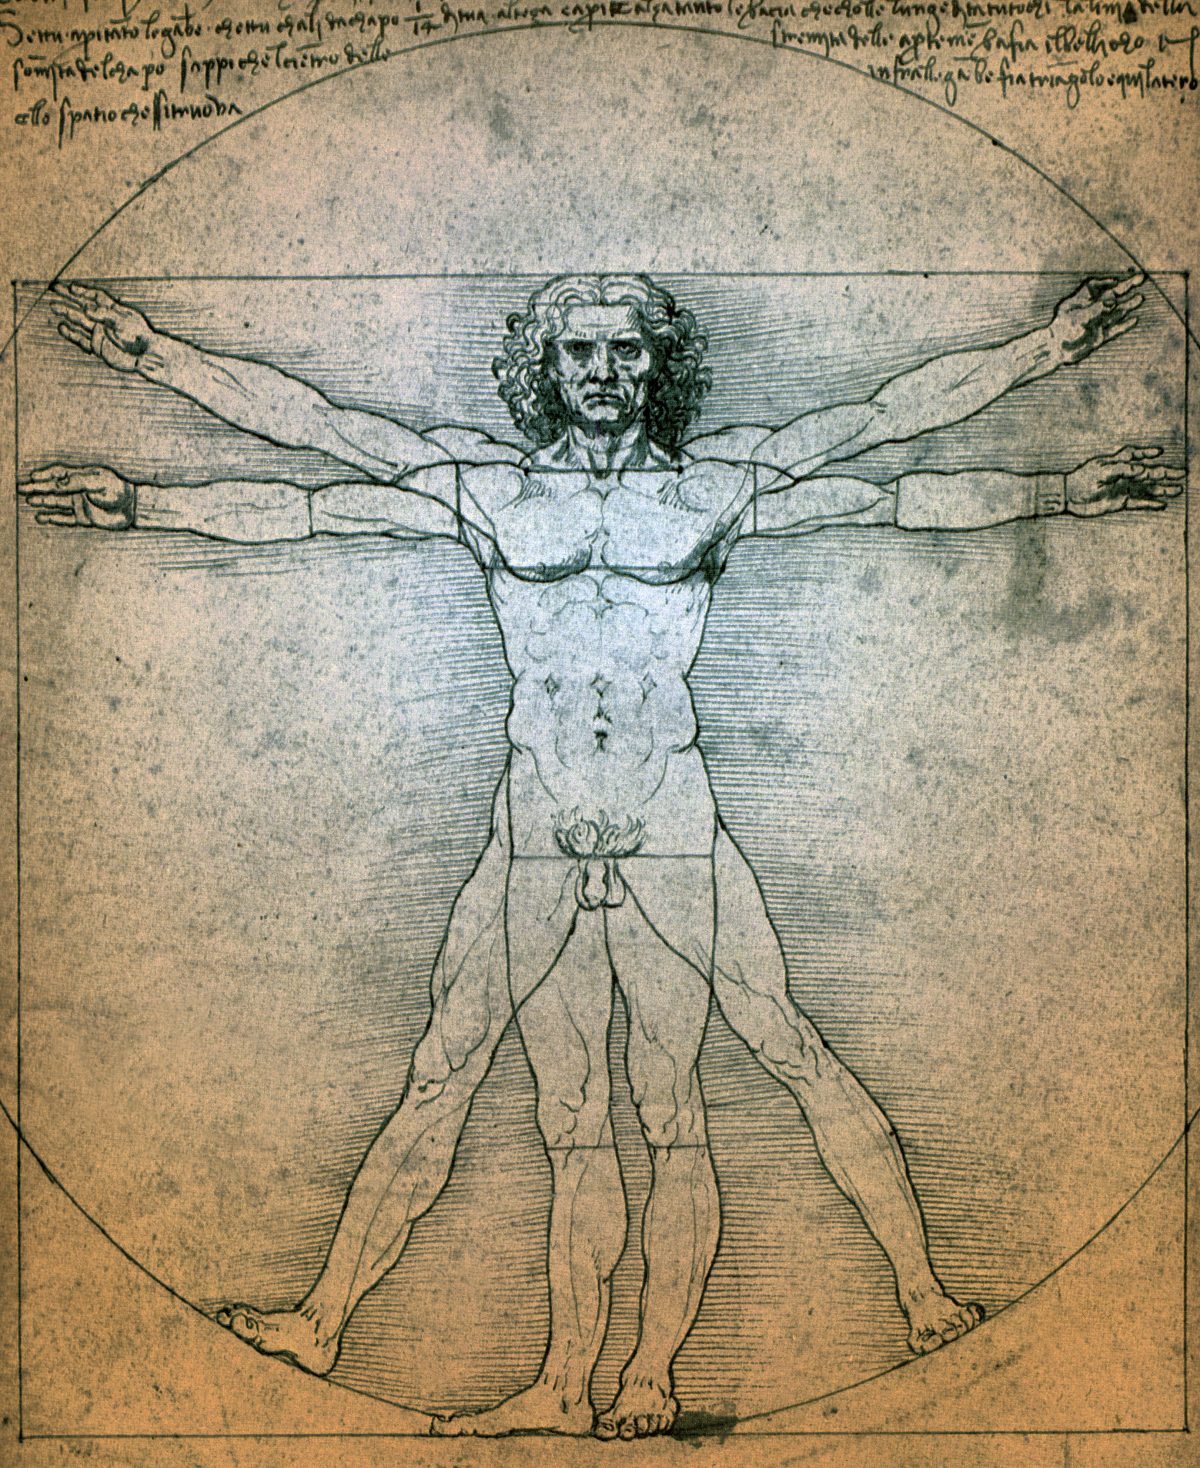 vitruvian man is a drawing created by leonardo da vinci circa 1487 it is accompanied by notes based t20 e3n08L